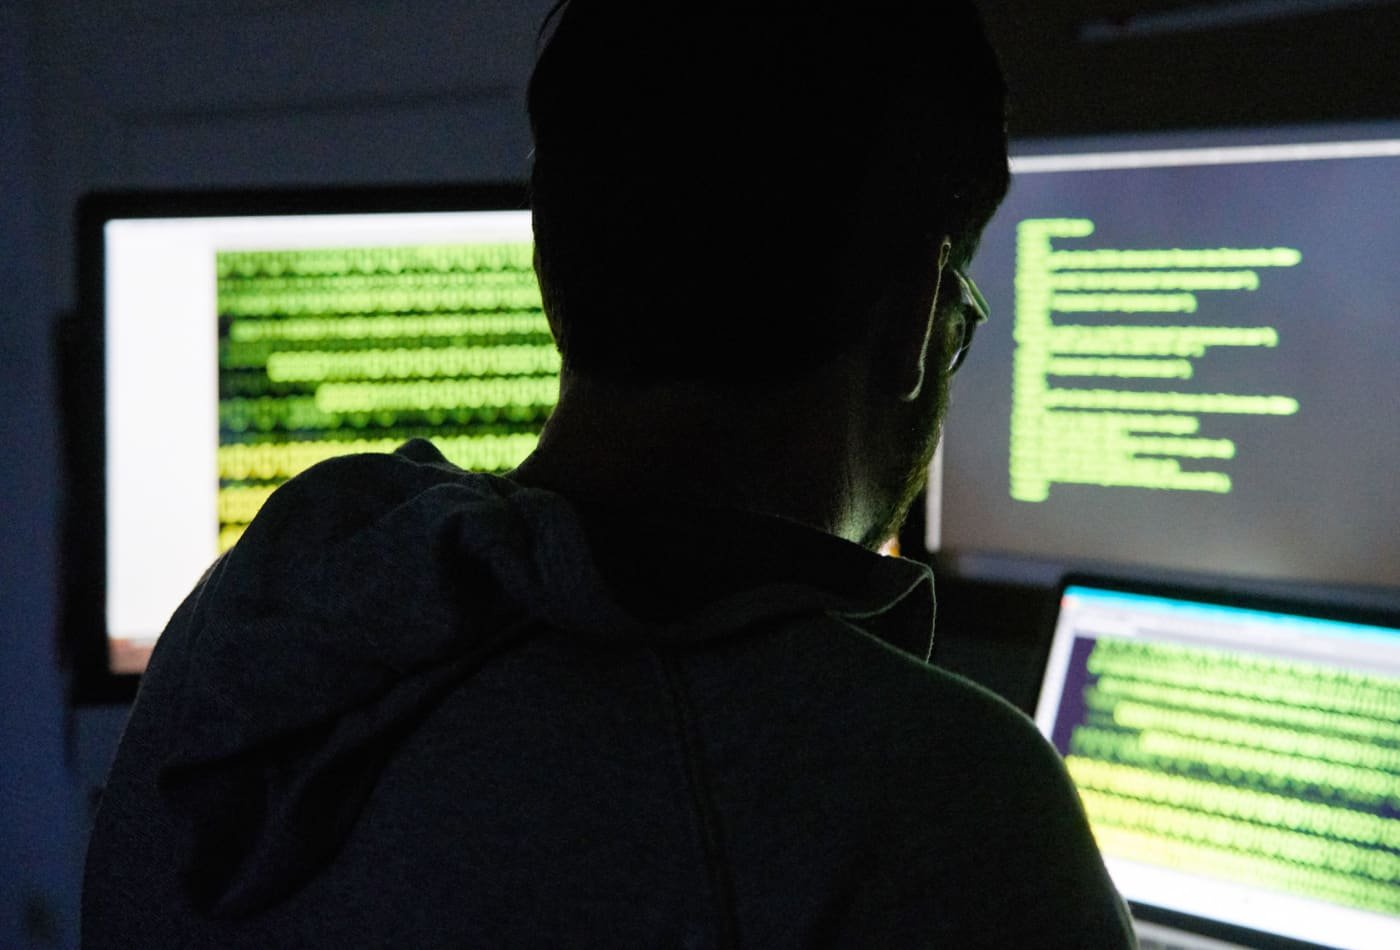 Russian hackers launch major cyberattack through U.S. aid agency's email system, Microsoft says